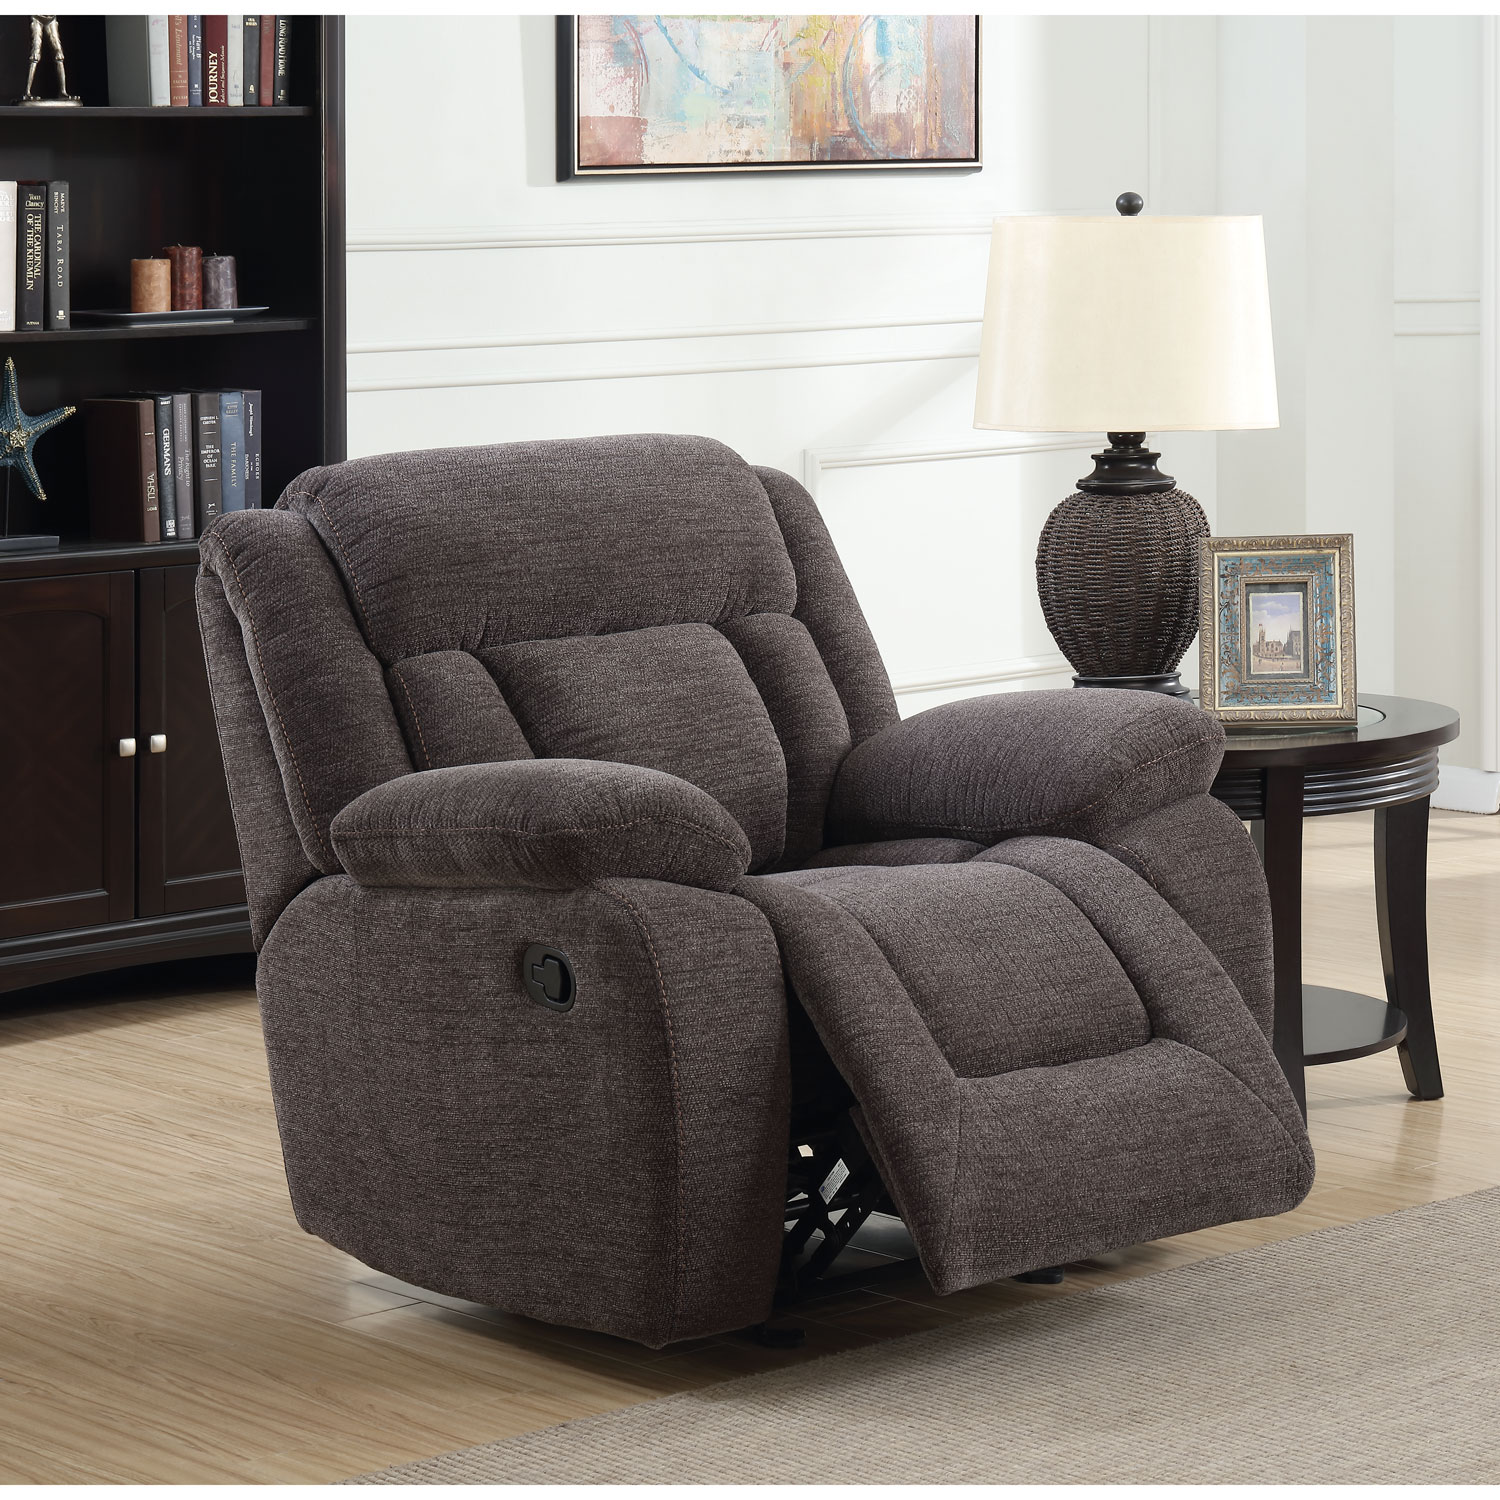 Geneva Contemporary Corduroy Recliner Chair Charcoal Recliners